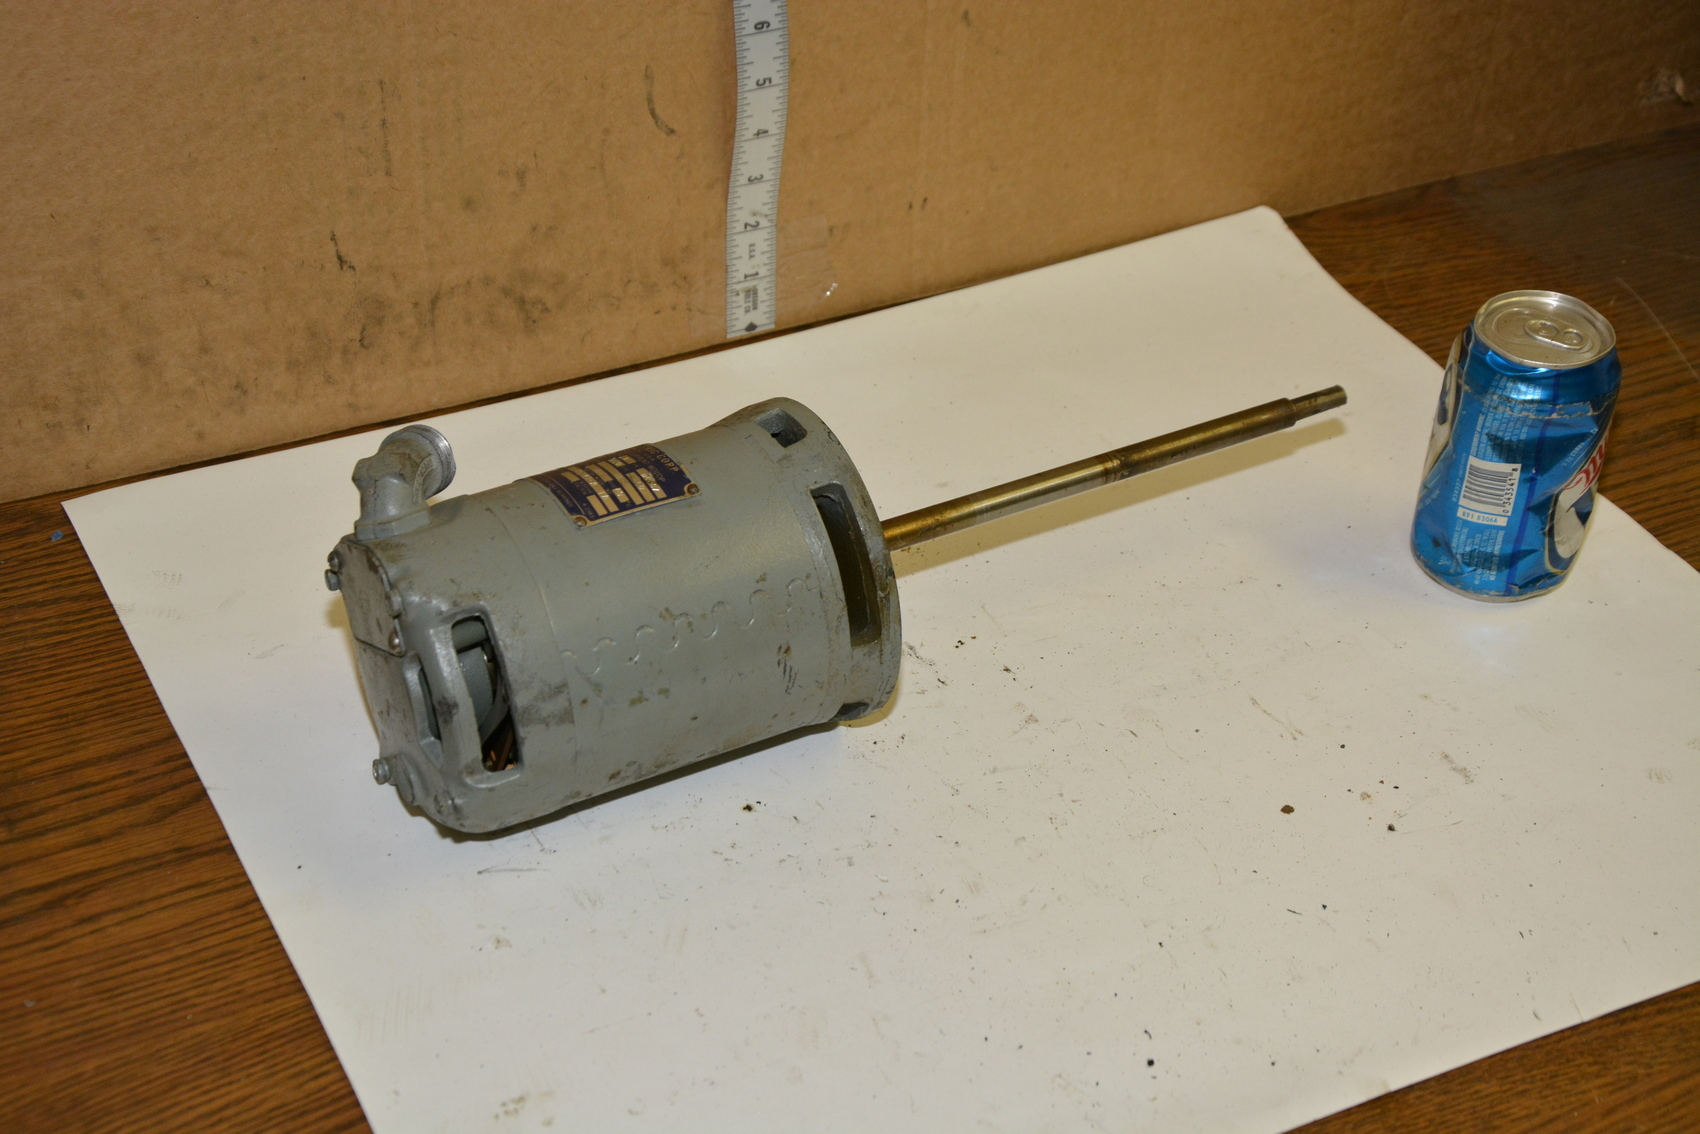 Doerr electric single phase motor 1 20 hp for a mixer or for 20 hp single phase motor